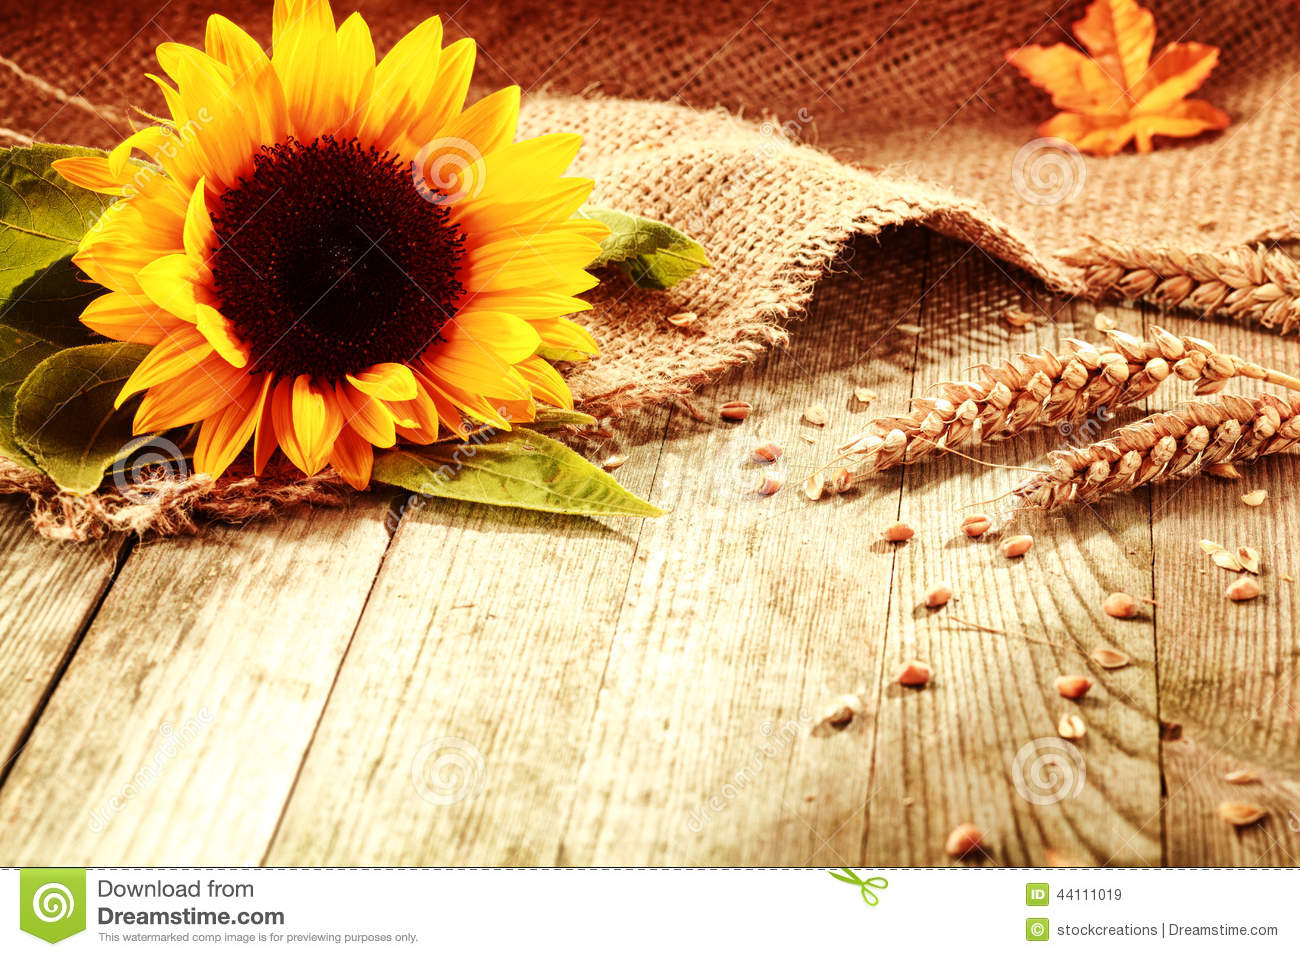 Rustic Background With A Sunflower And Wheat Stock Photo 44111019